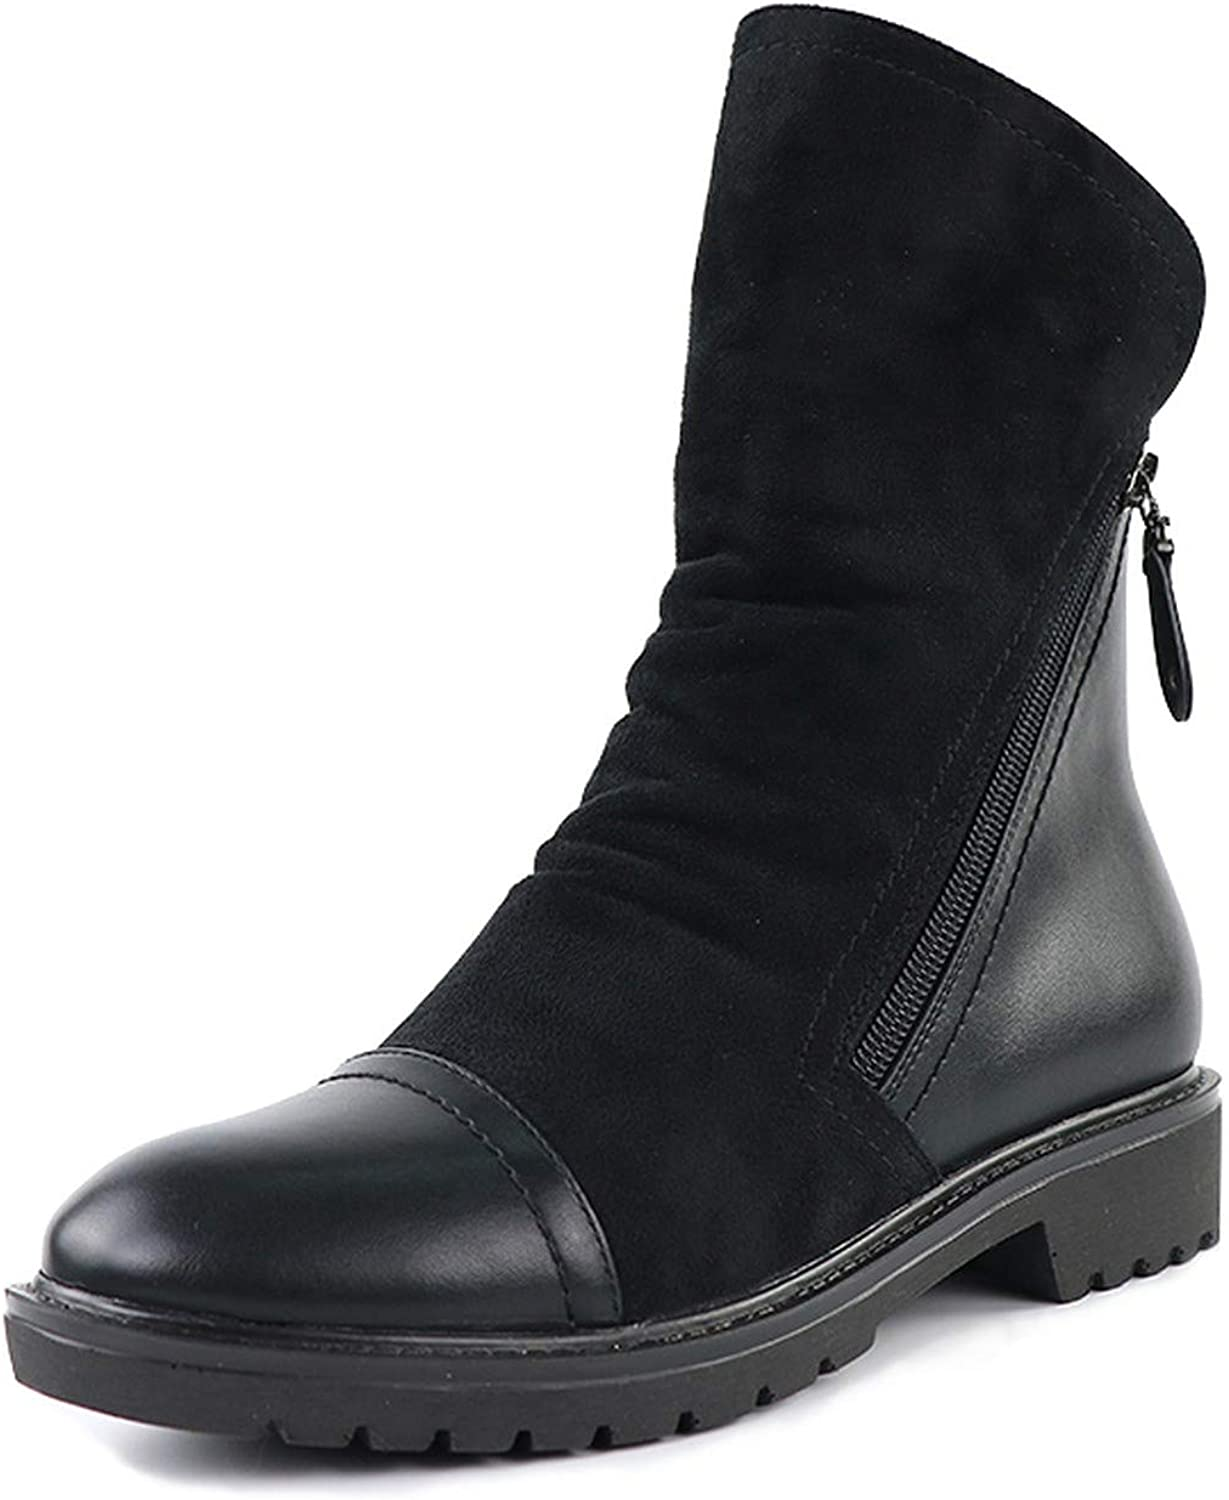 The memory is really bad Ankle Boot Suede Soft Leather Women Boots Double Zip Short Plush Boots Plus Size shoes,Black,8.5